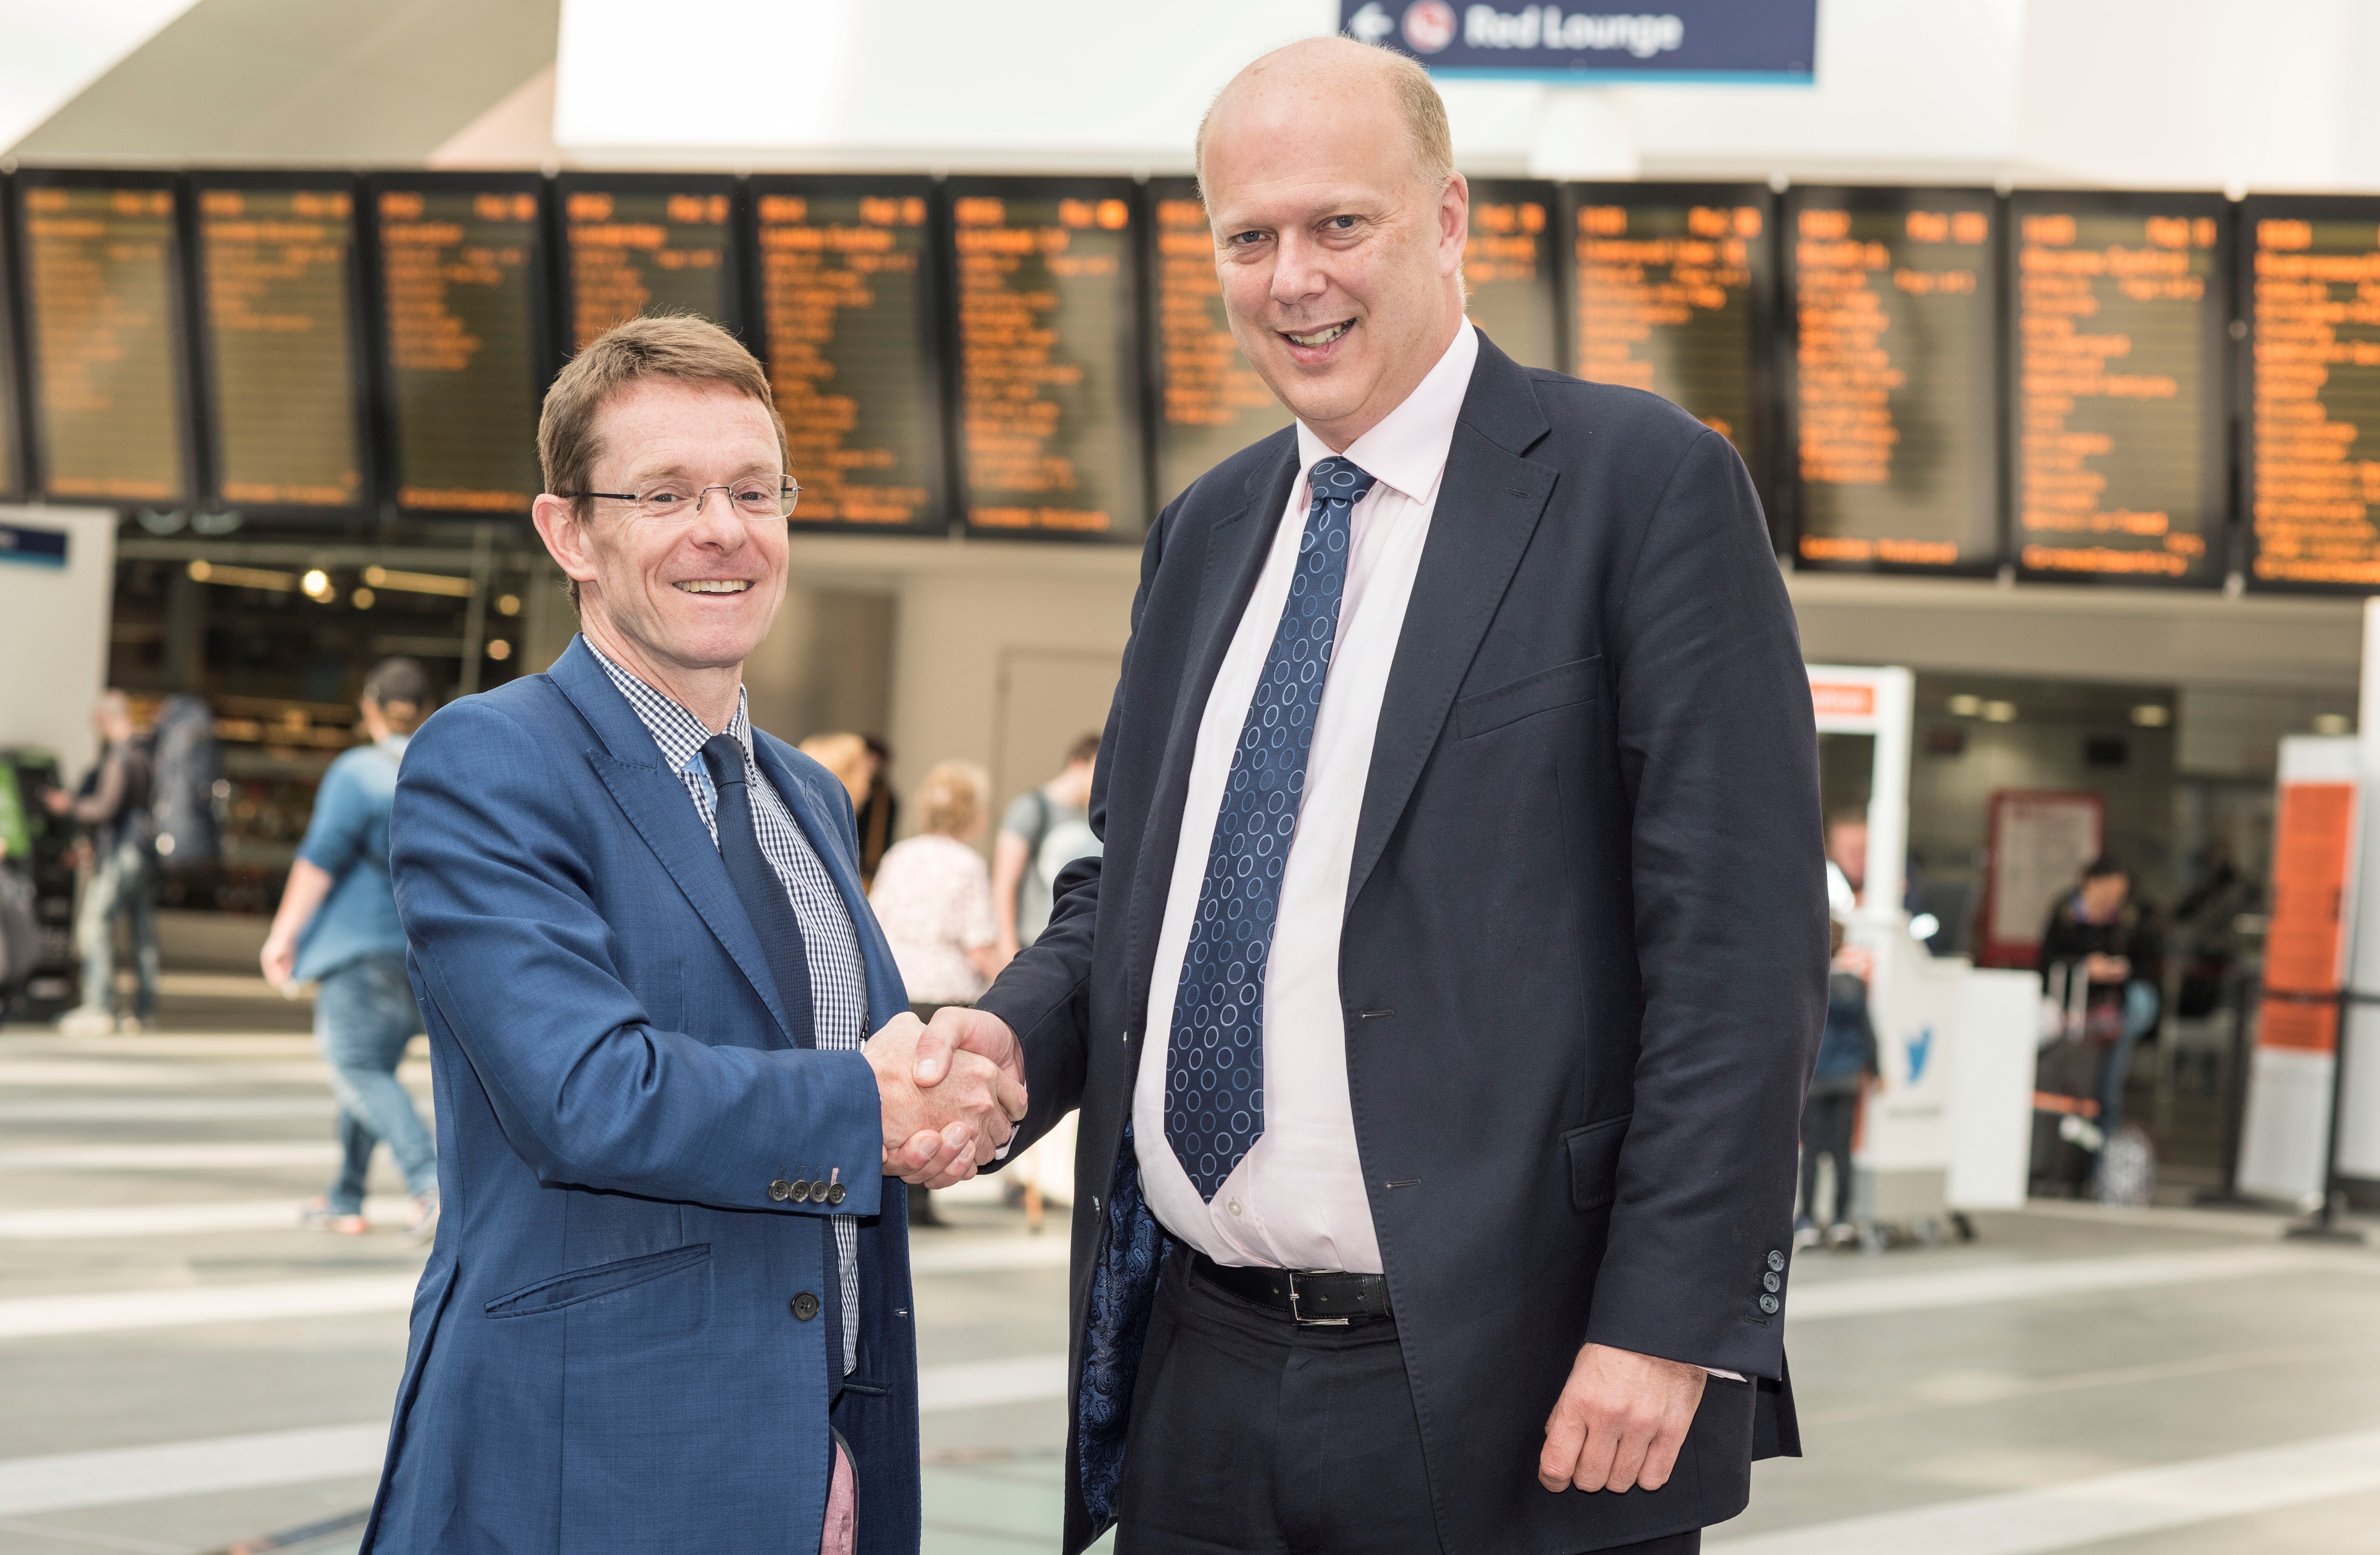 Mayor welcomes near £1 billion rail investment